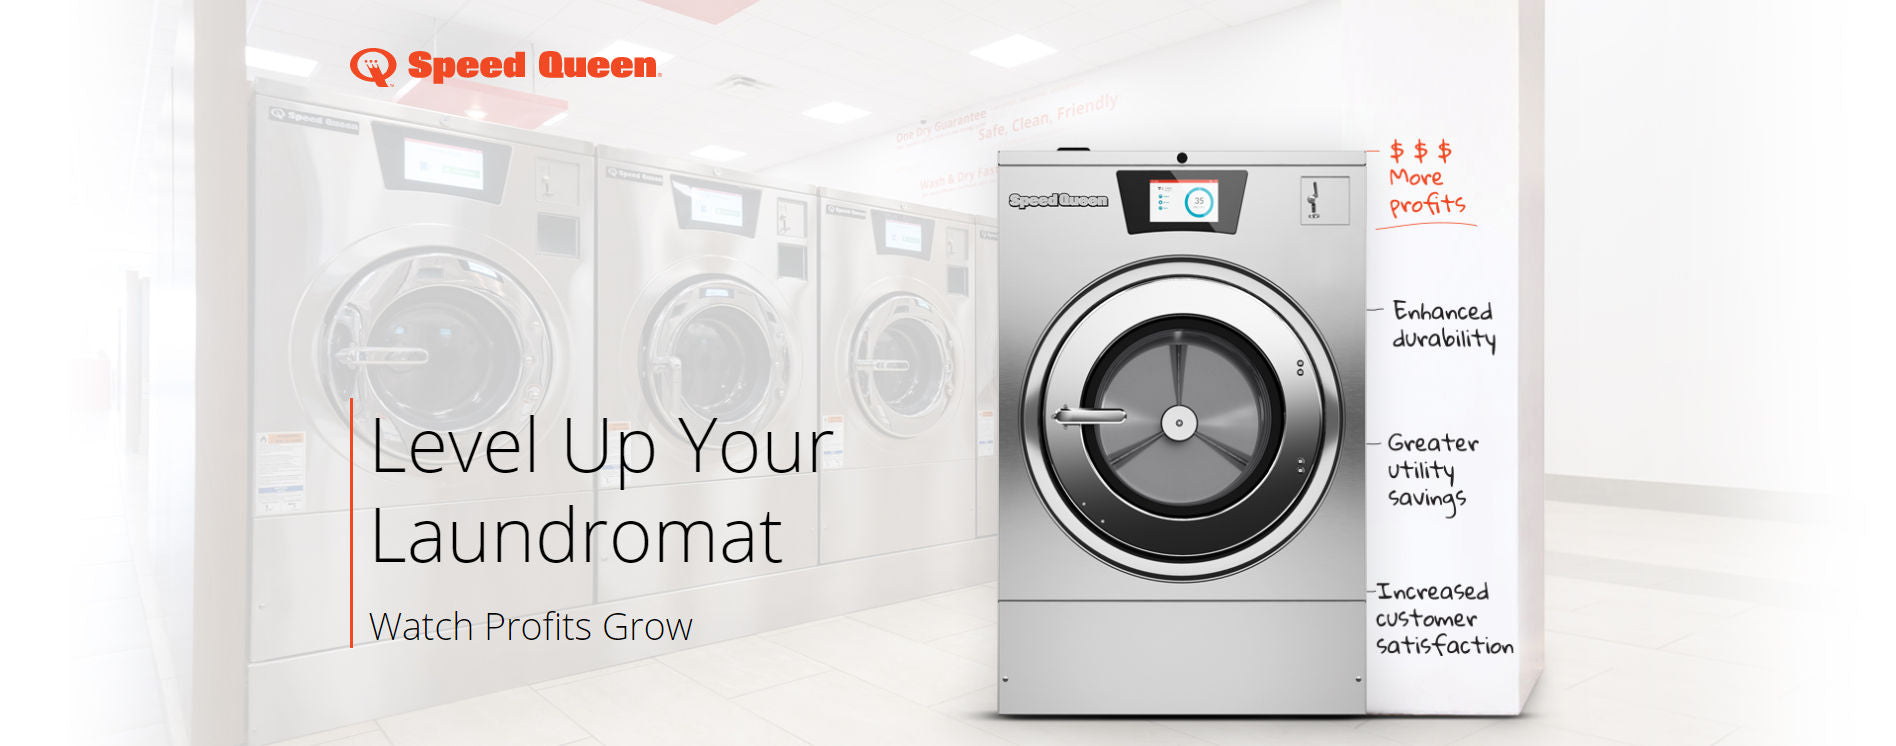 Level Up Your Laundromat with Star Distributing